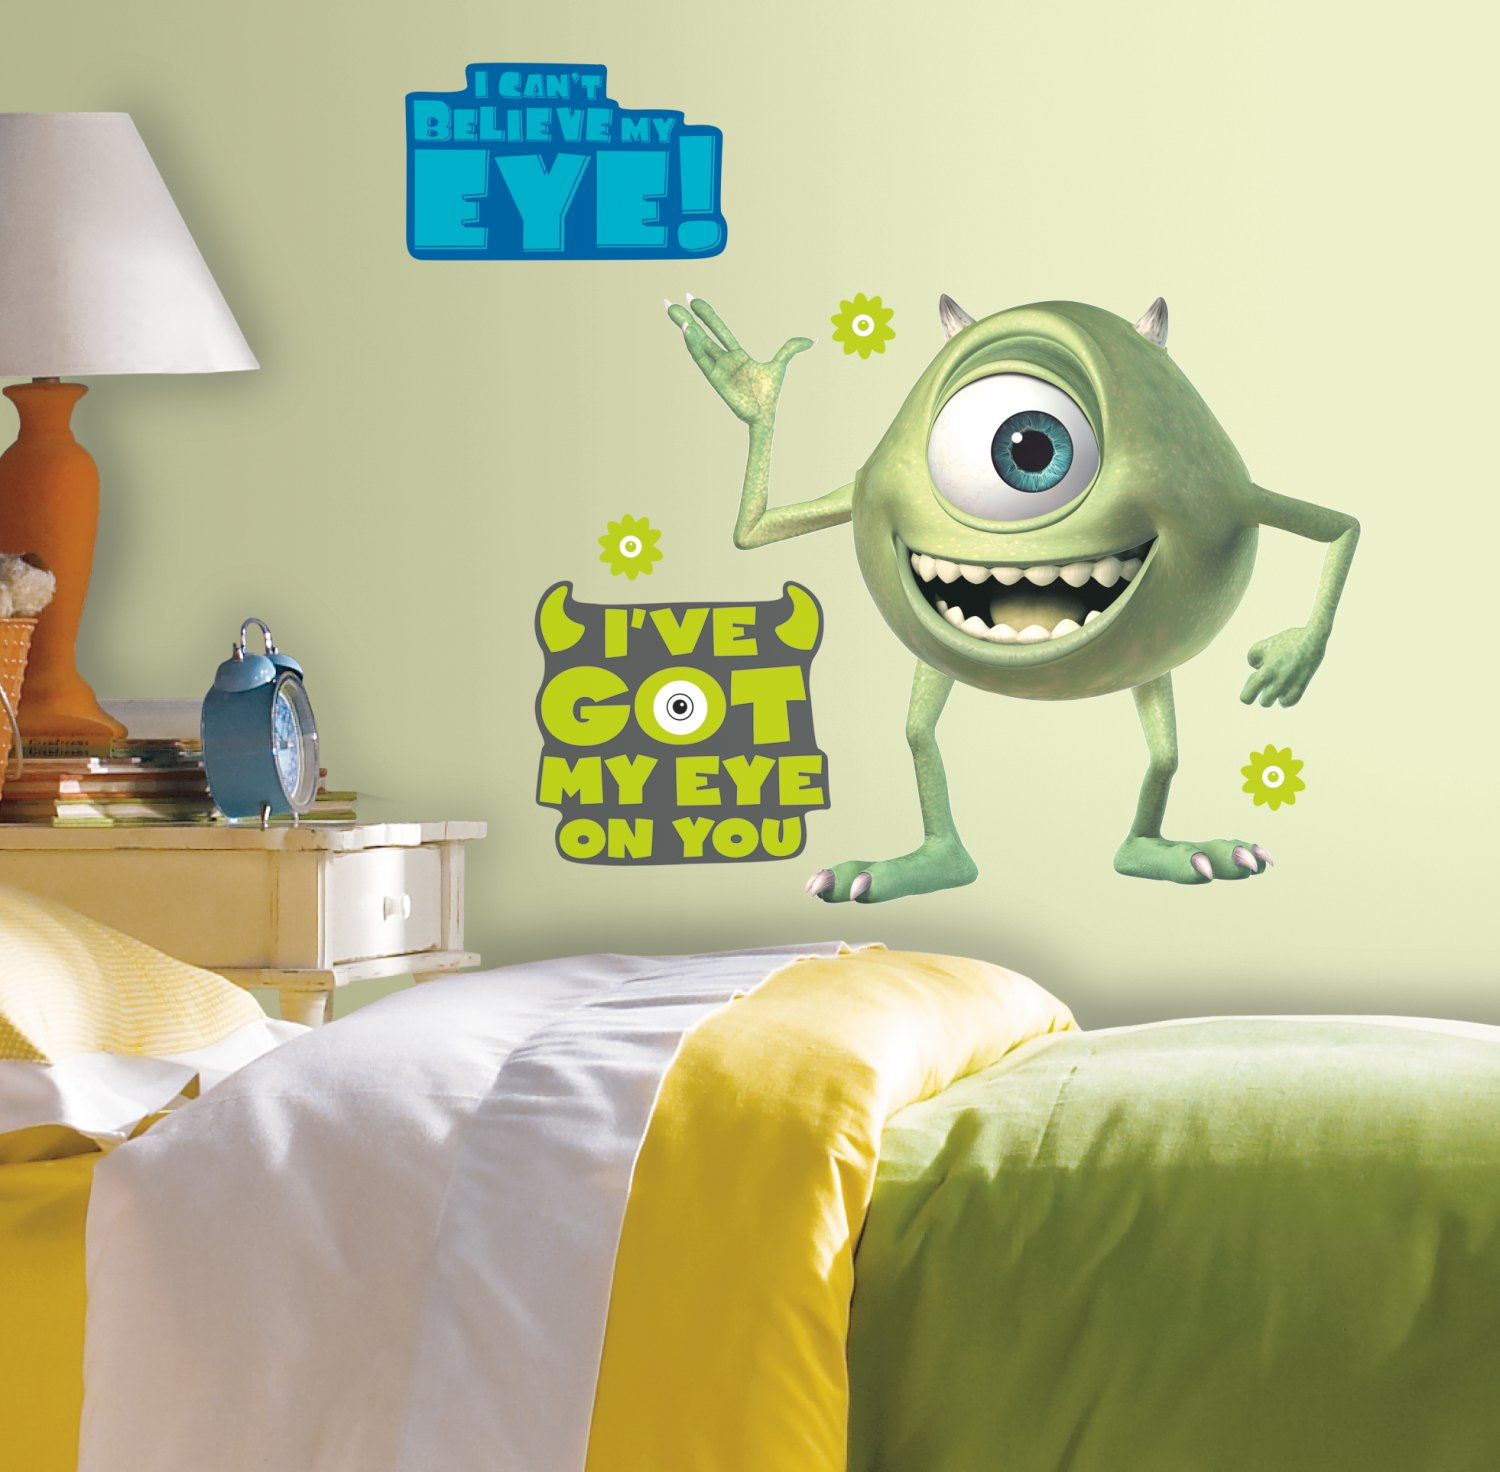 Roommates Rmk2011Gm Monsters Giant Mike Wazowski Peel And Stick Wall ...